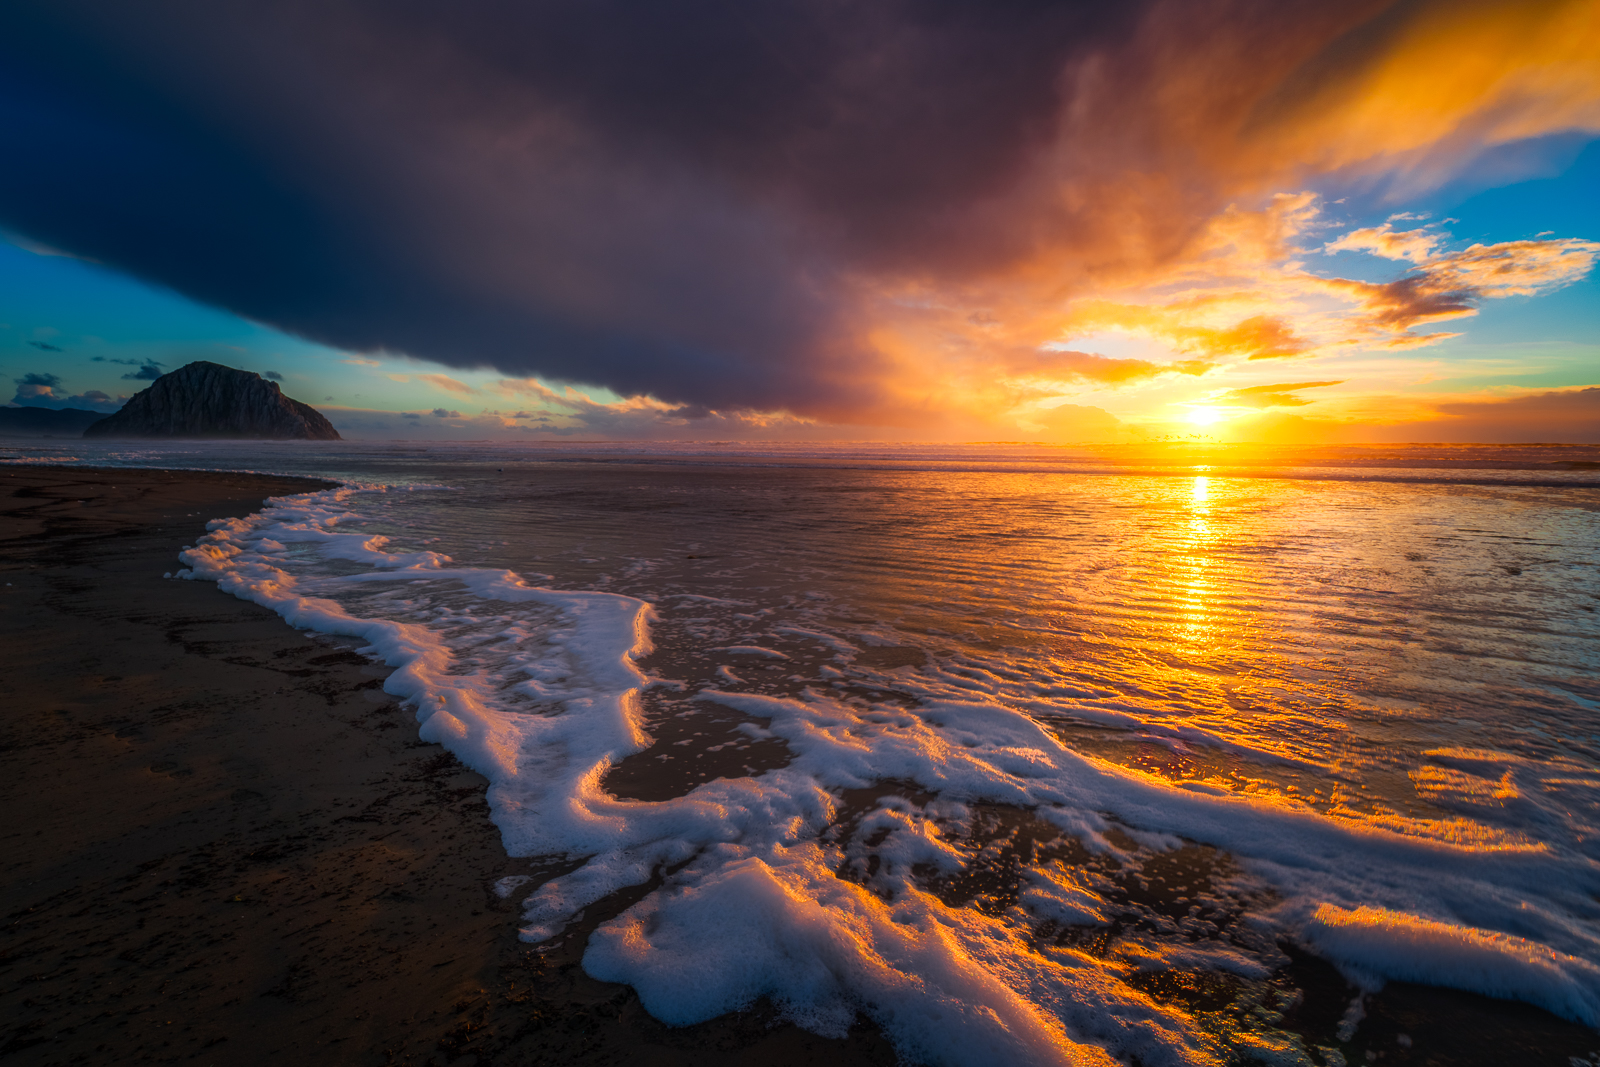 Sea Foam Sunset